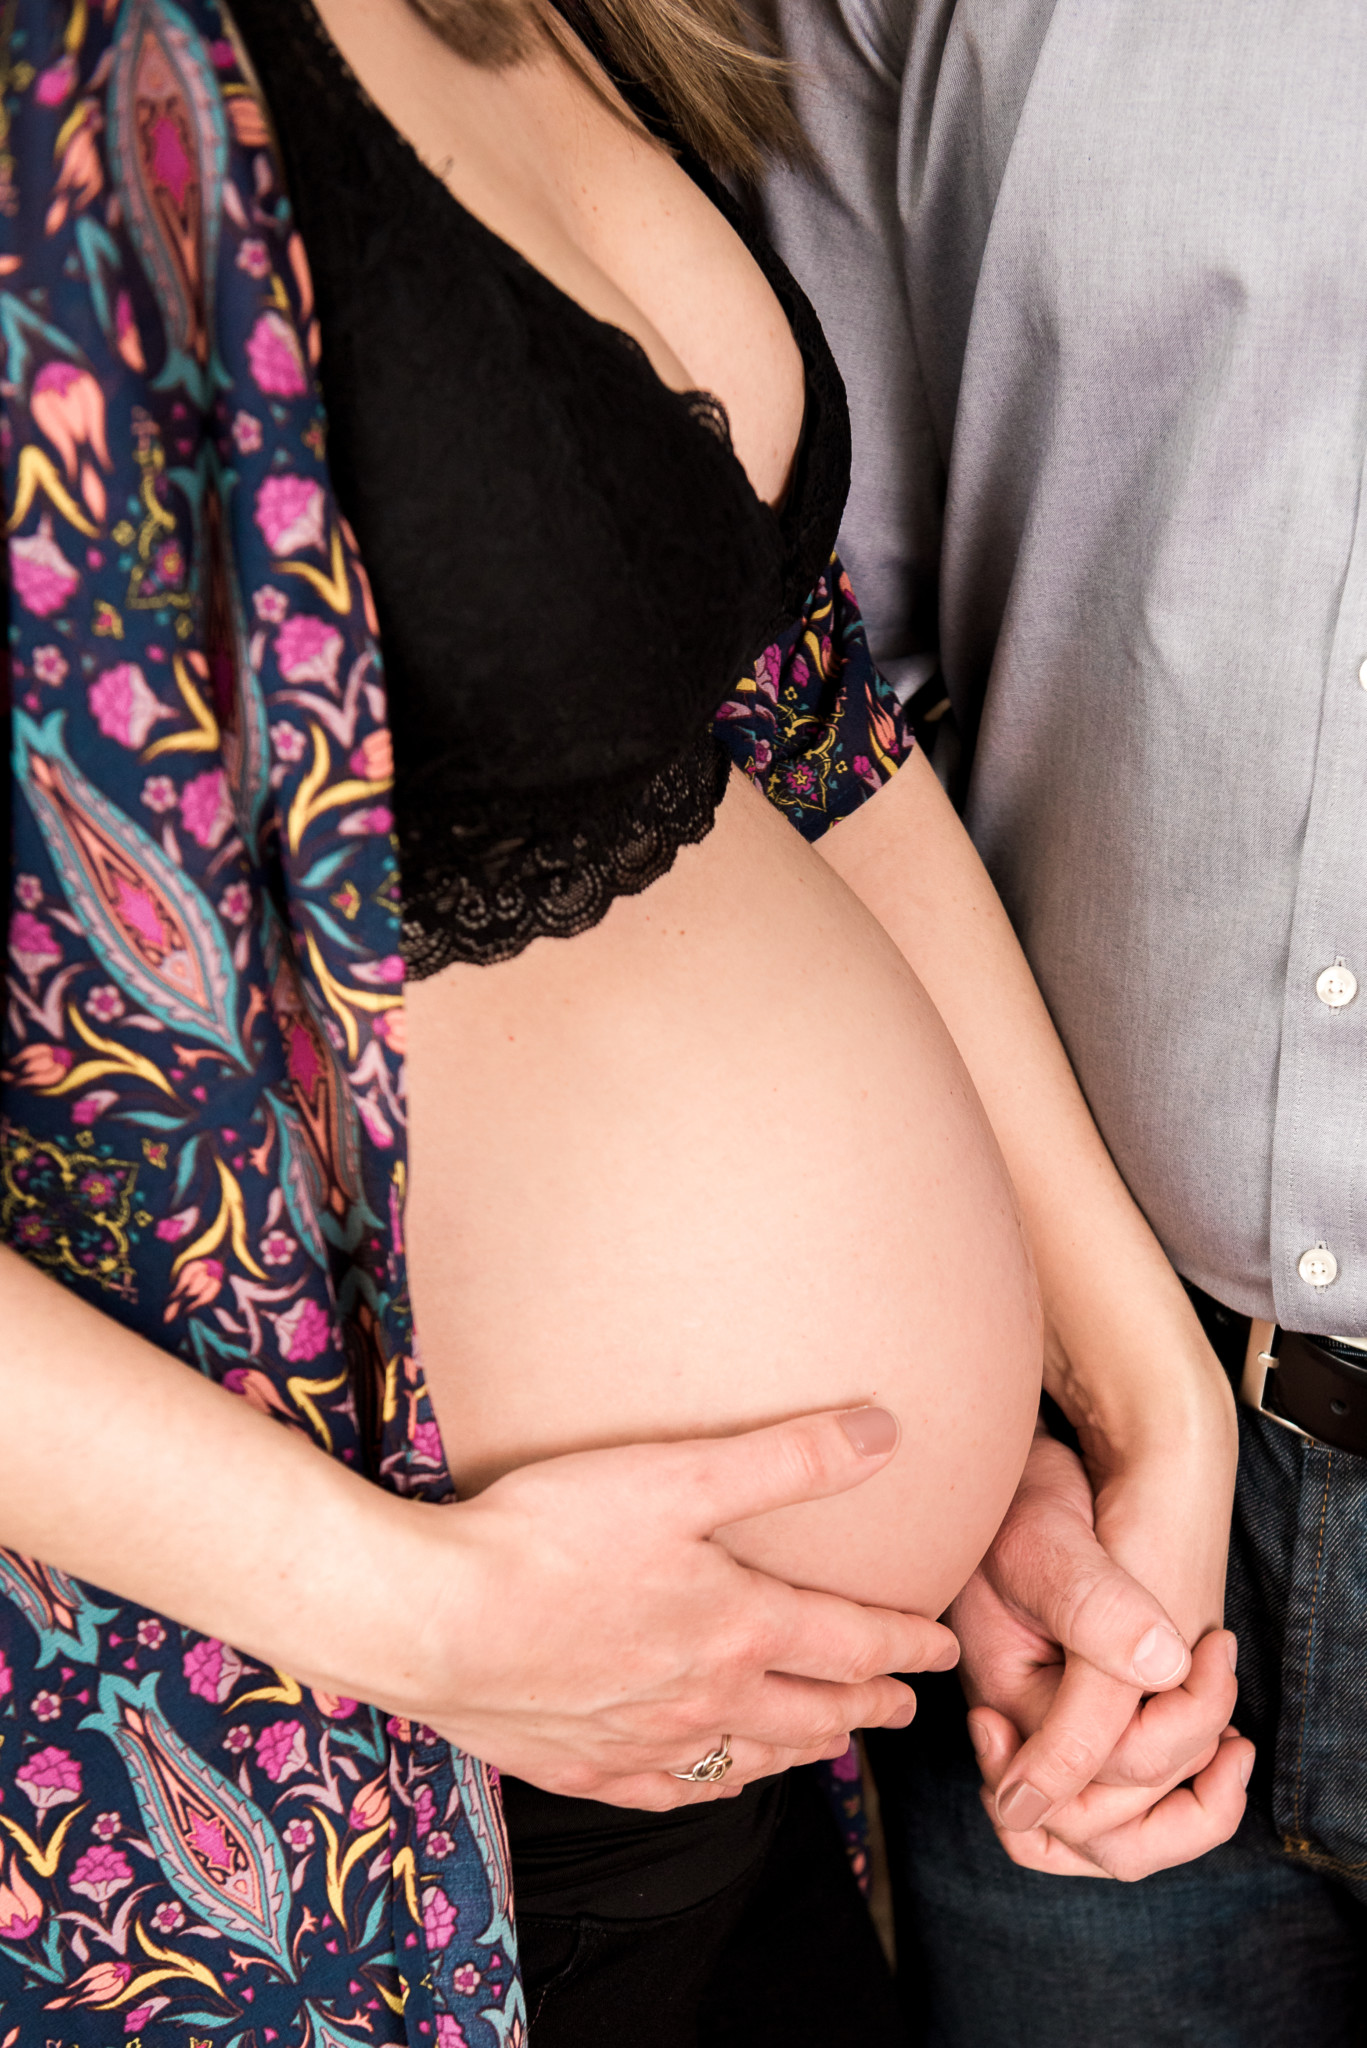 Expectant Pregnant mom wearing a black bra and floral robe holds hands with her husband as she caresses her stomach